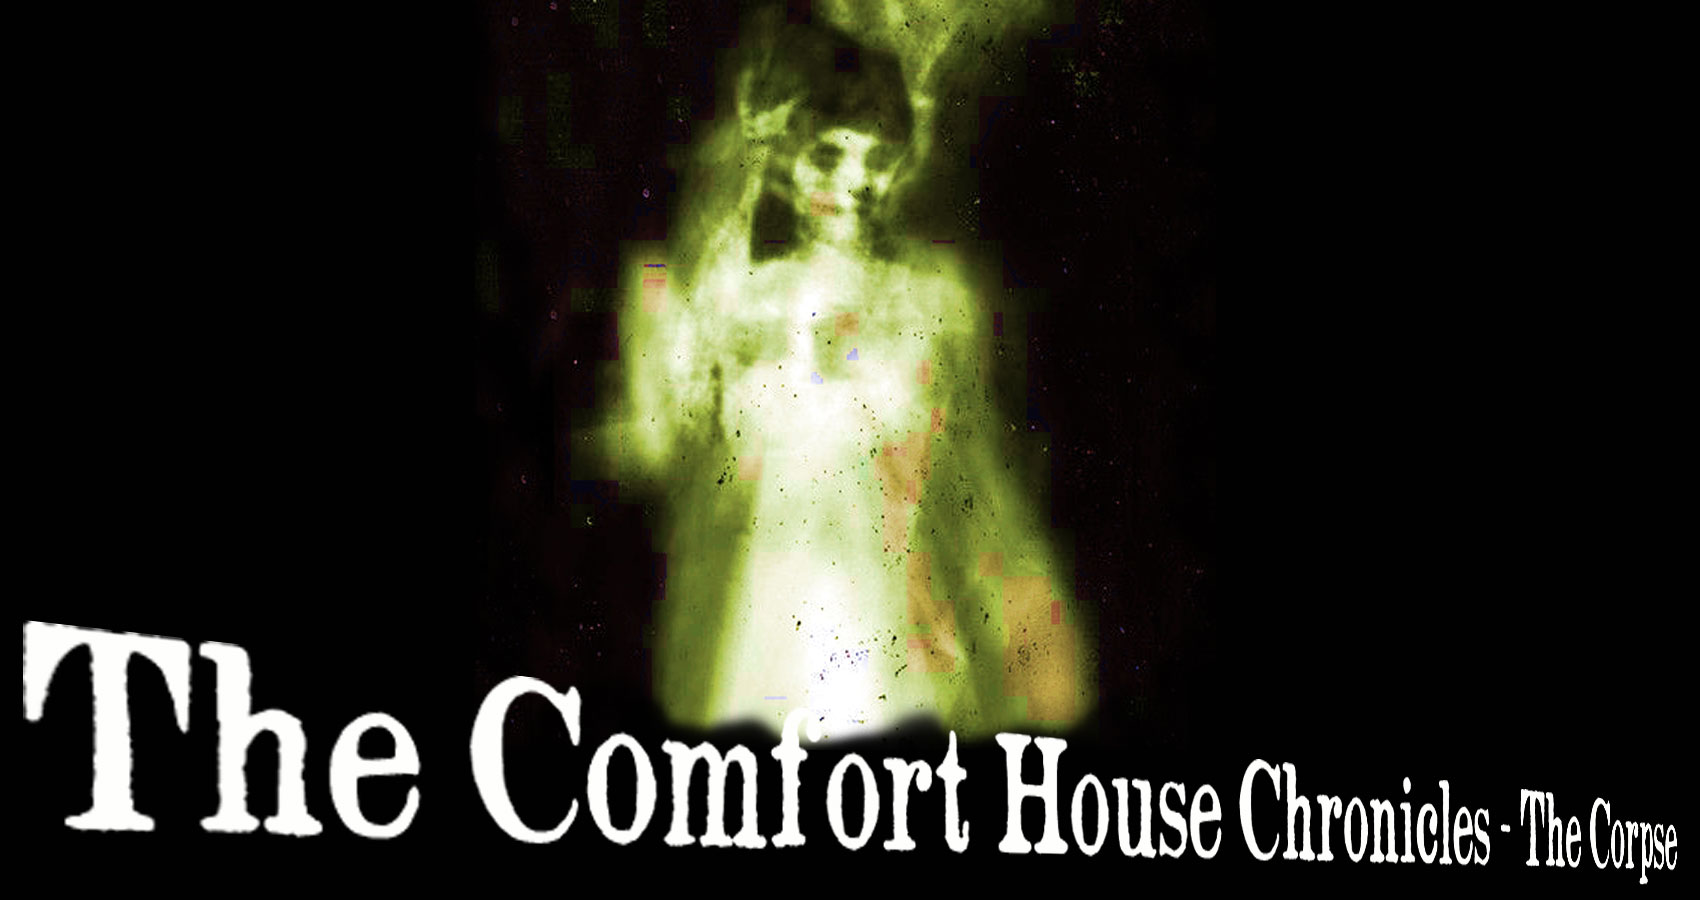 The Comfort House Chronicles - The Corpse, written by RayFed at Spillwords.com